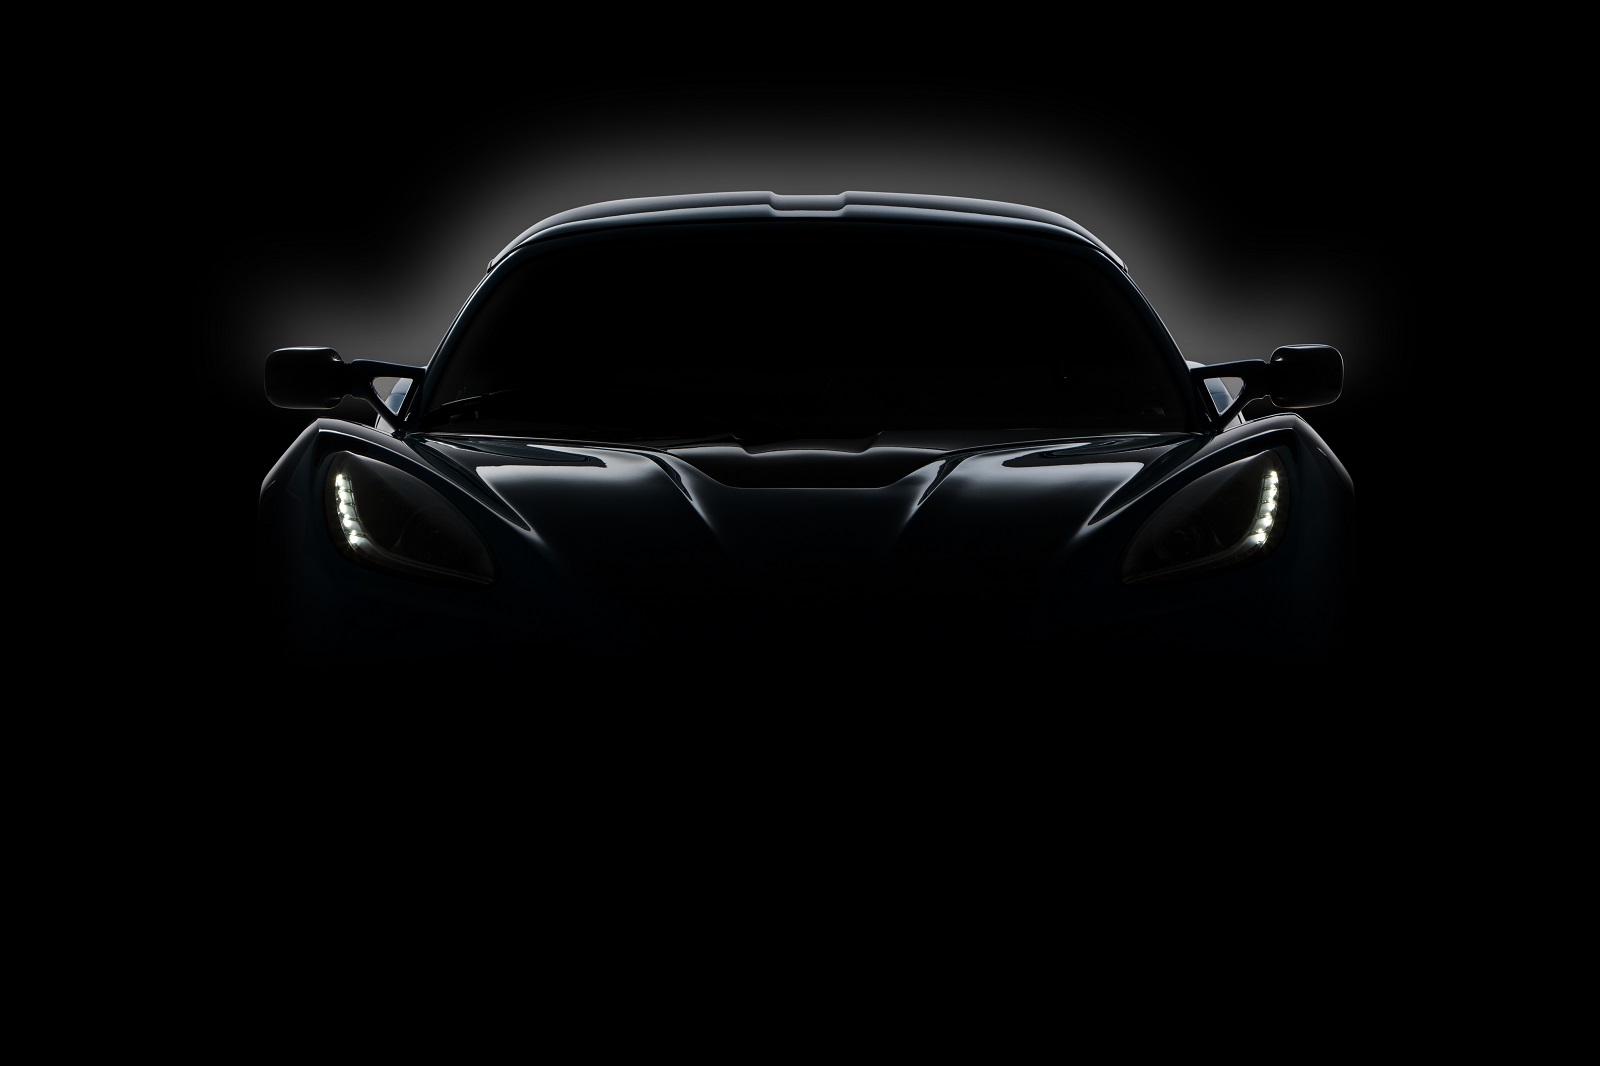 Diesel Wallpaper Cars All Electric Sports Car Coming Next Month From Detroit